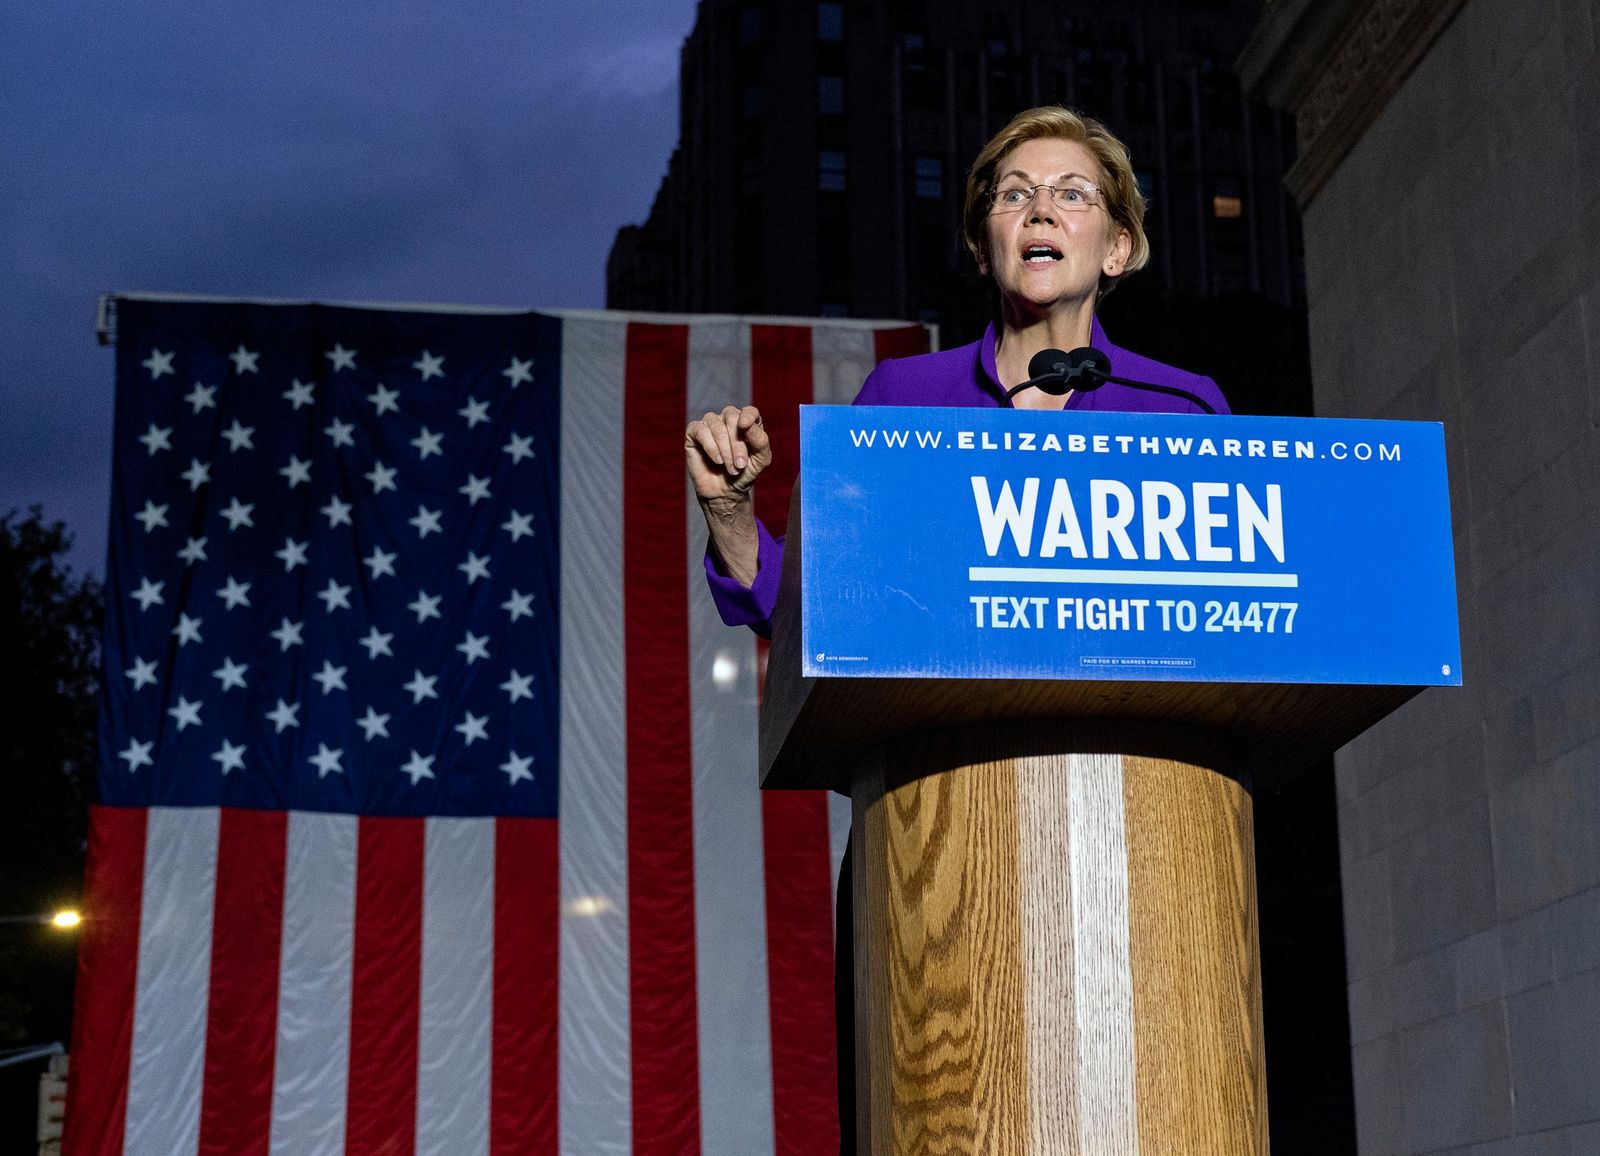 Democratic presidential candidate U.S. Sen. Elizabeth Warren addresses supporters at a rally, Monday, Sept. 16, 2019, in New York. (AP Photo/Craig Ruttle)